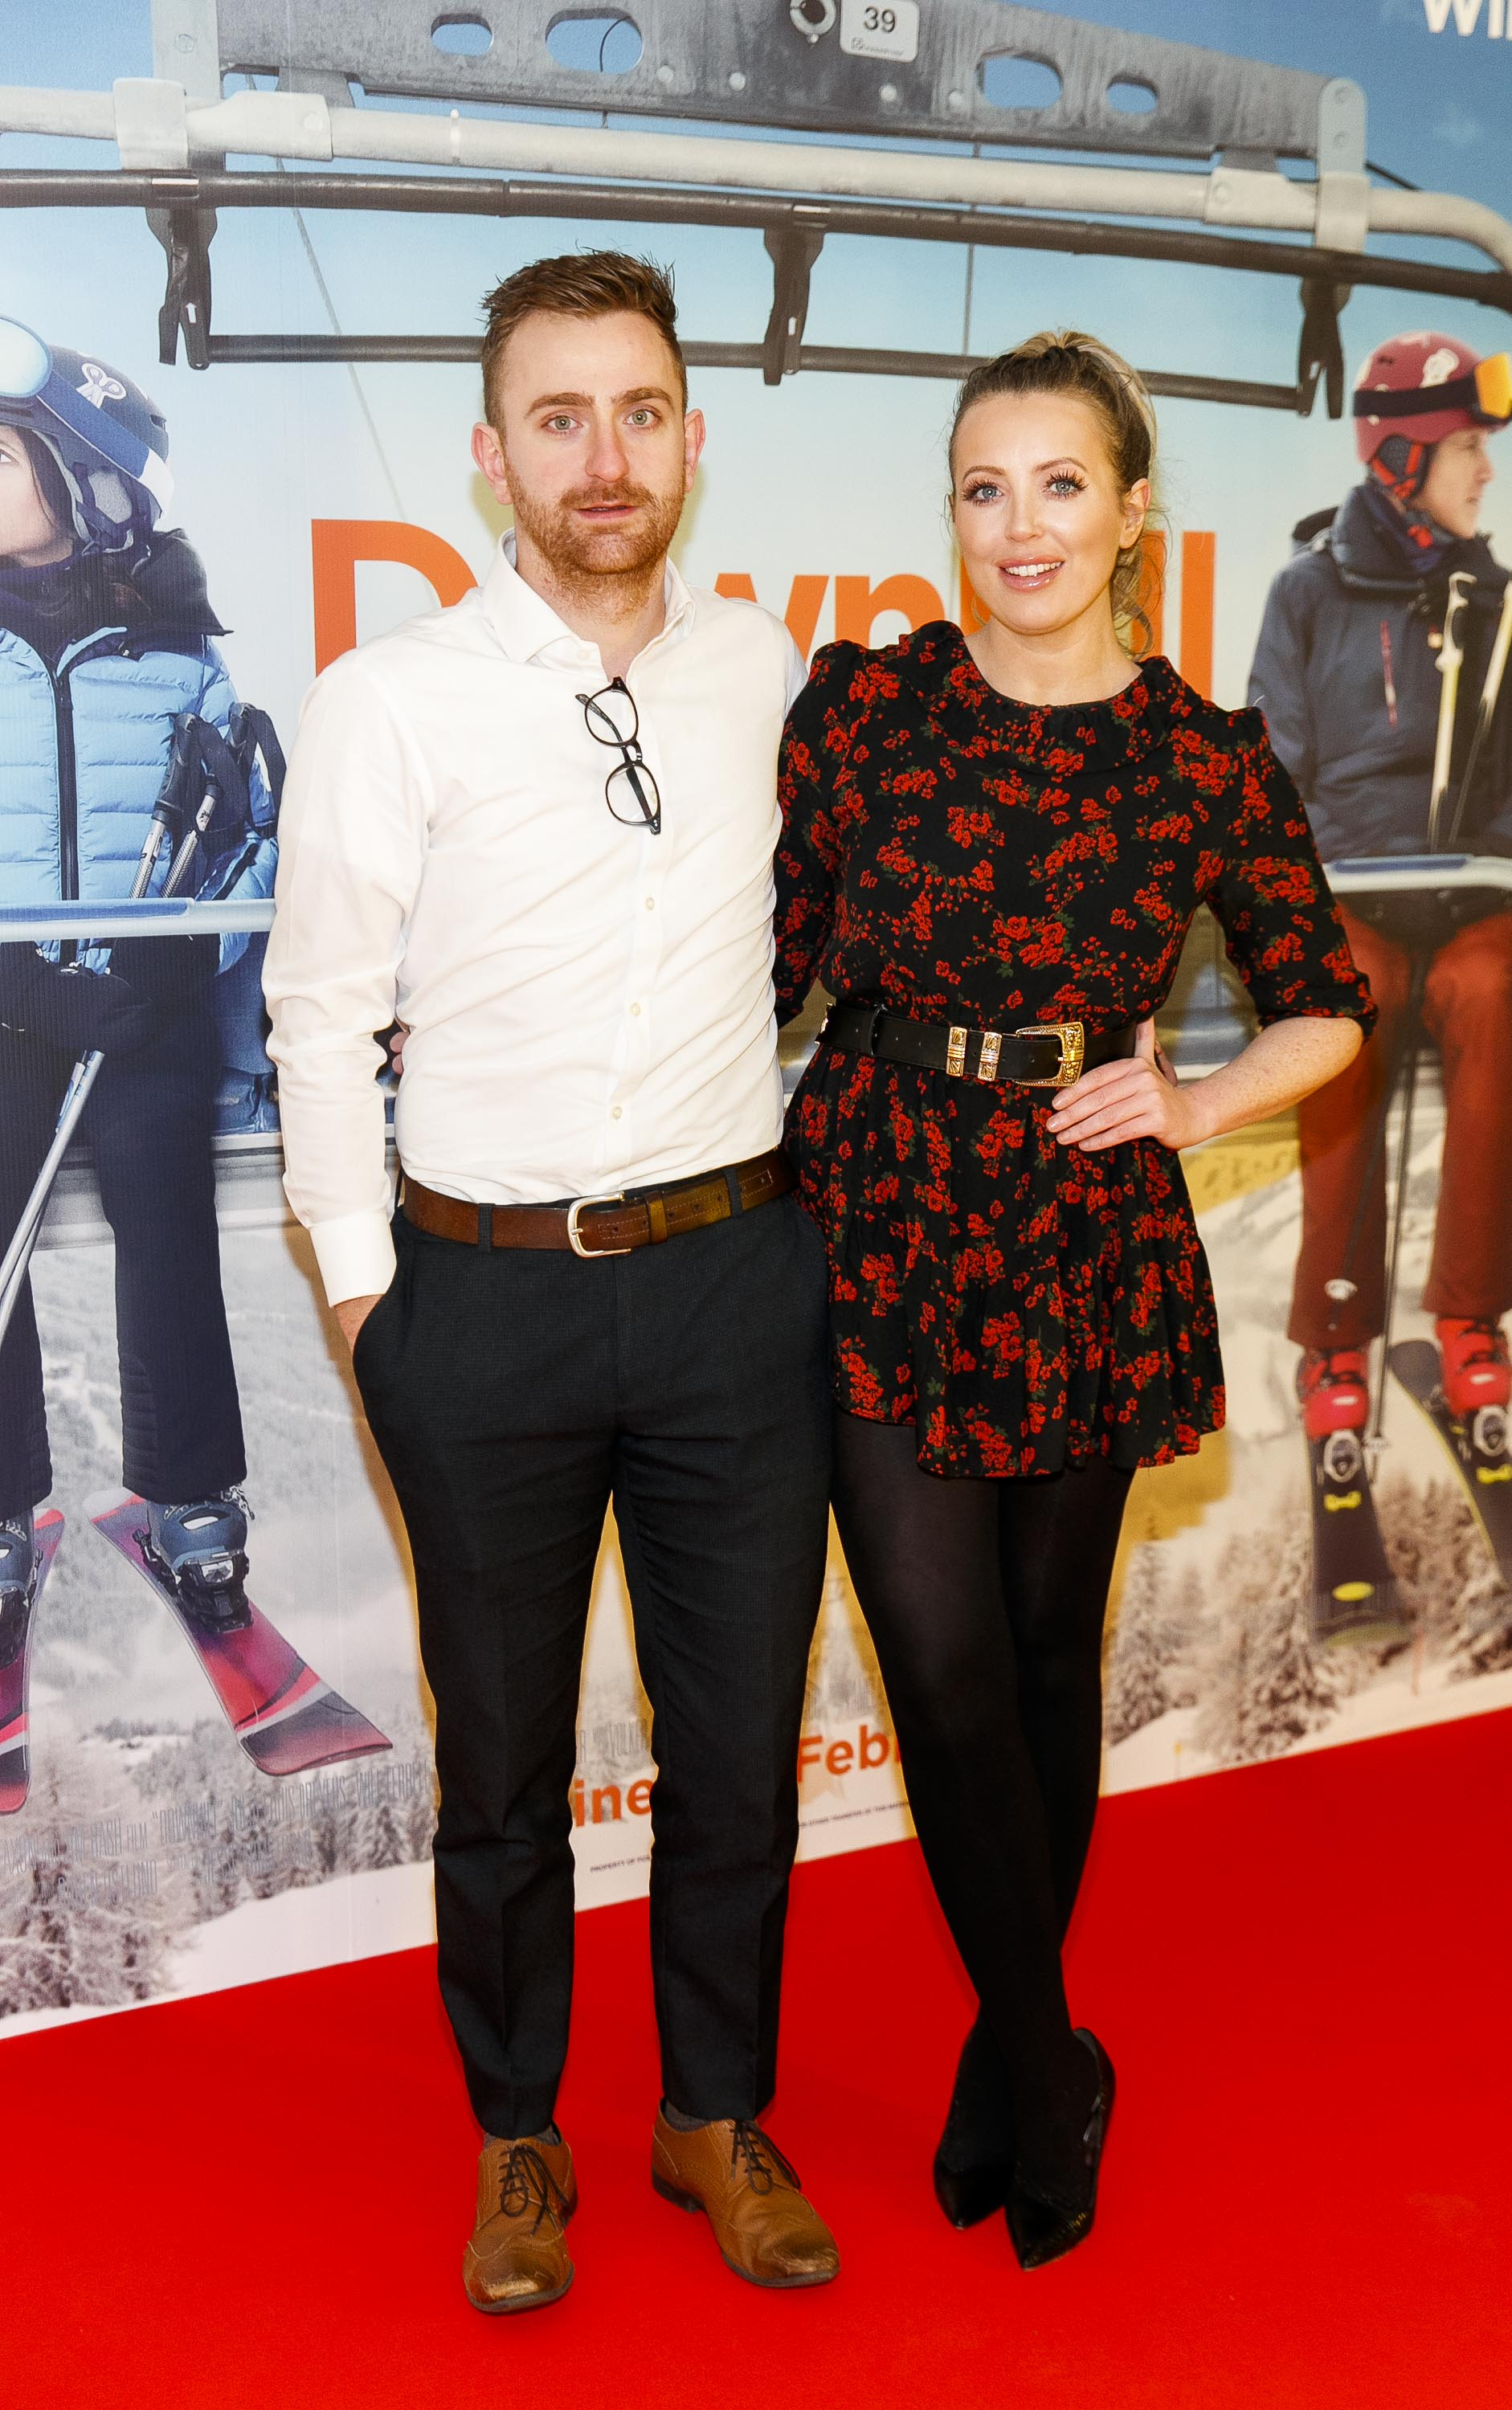 Edward Mackey and AJ fitzsimmons pictured at a special preview screening of Downhill at the Light House Cinema, Dublin. Picture: Andres Poveda.